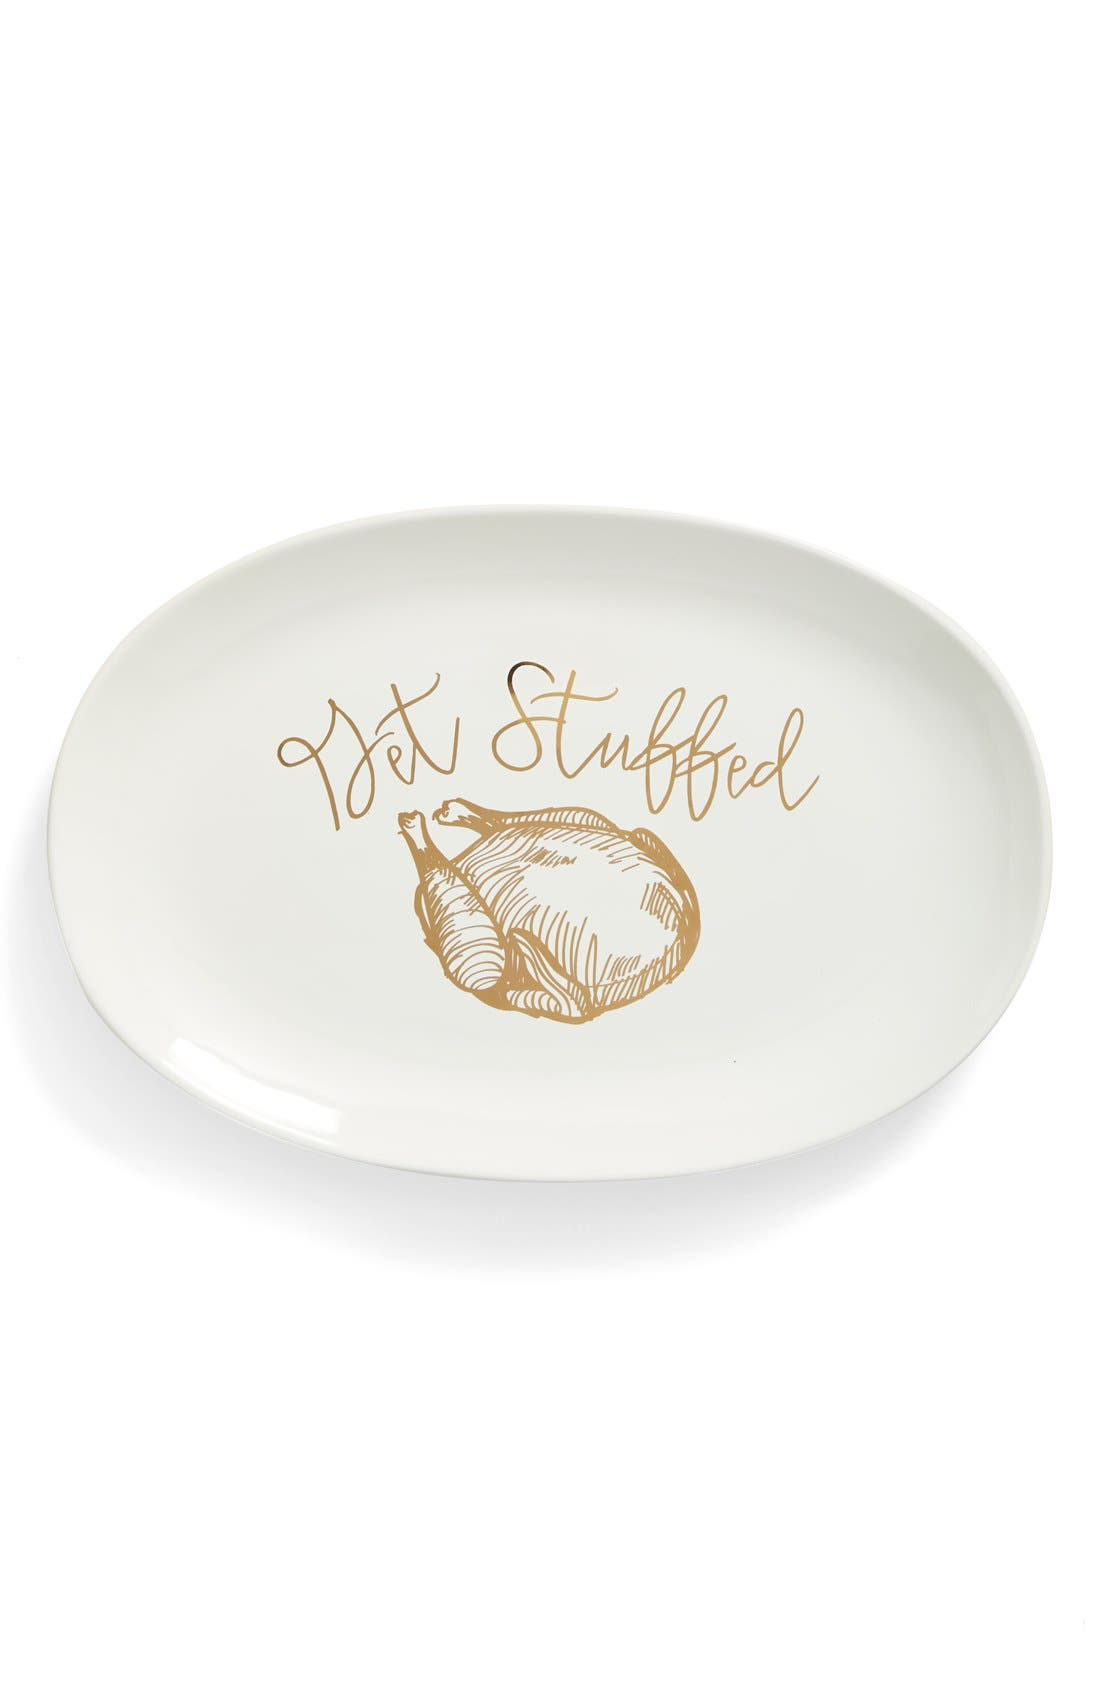 Alternate Image 1 Selected - Gibson 'Get Stuffed' Stoneware Serving Platter